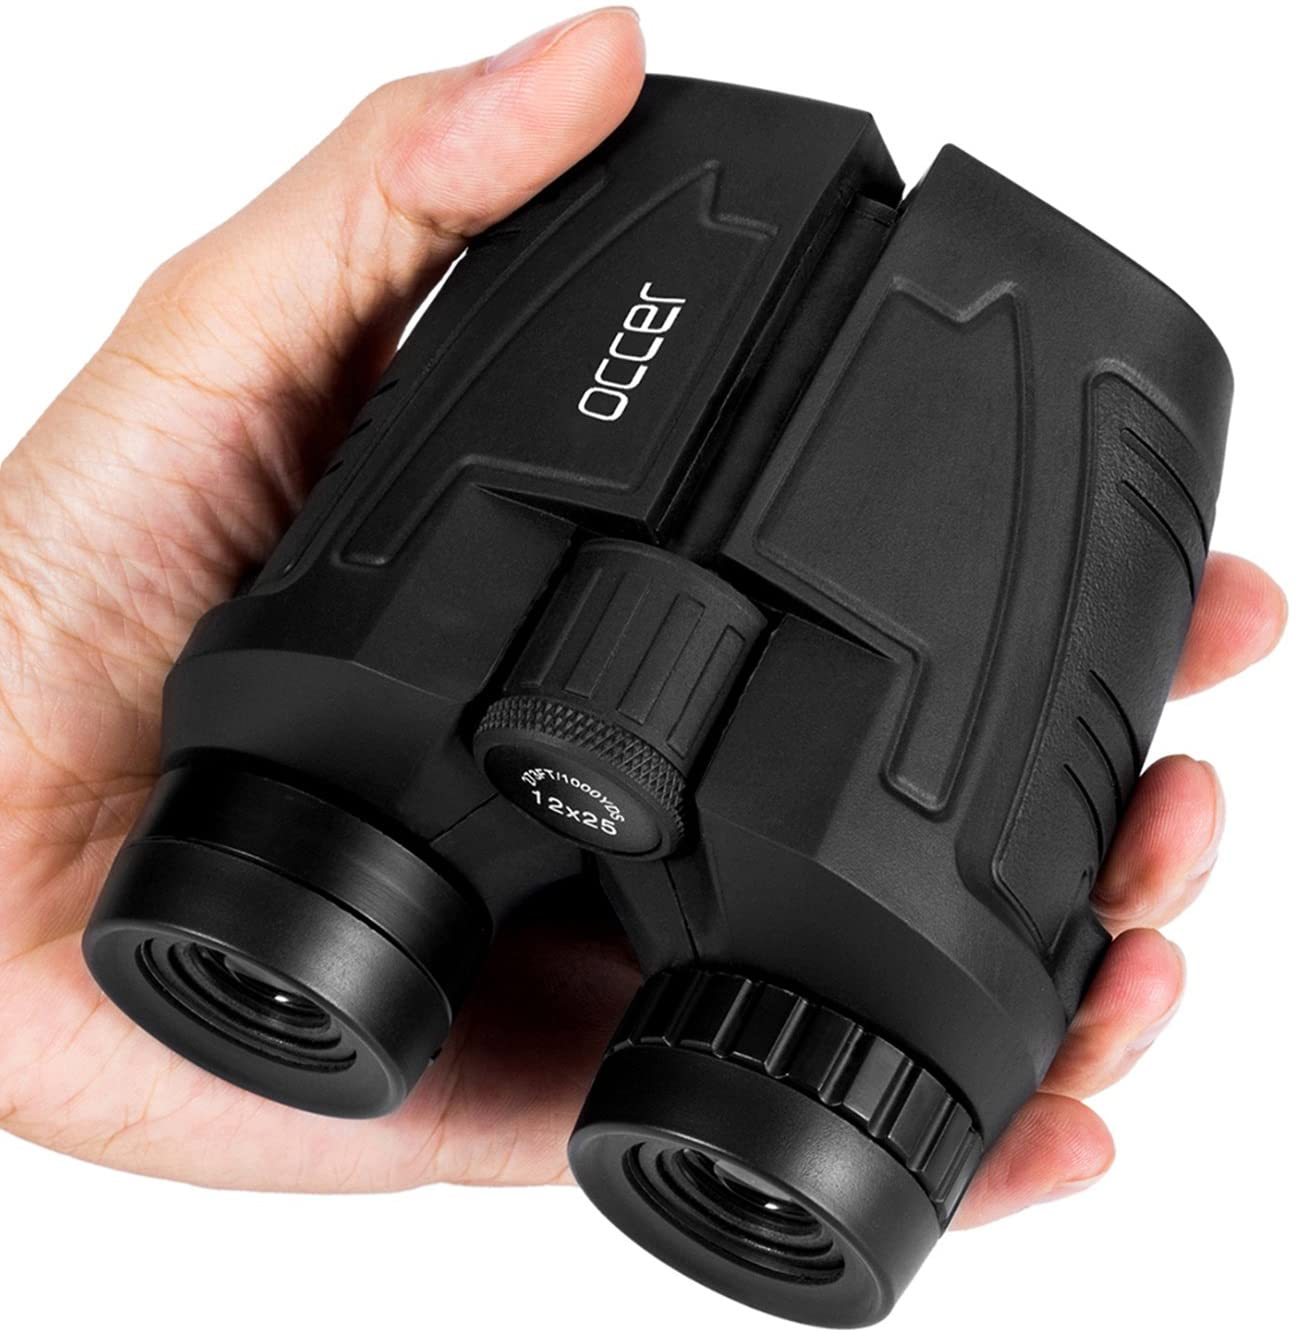 Occer 12x25 Compact Binoculars, best gifts for dad